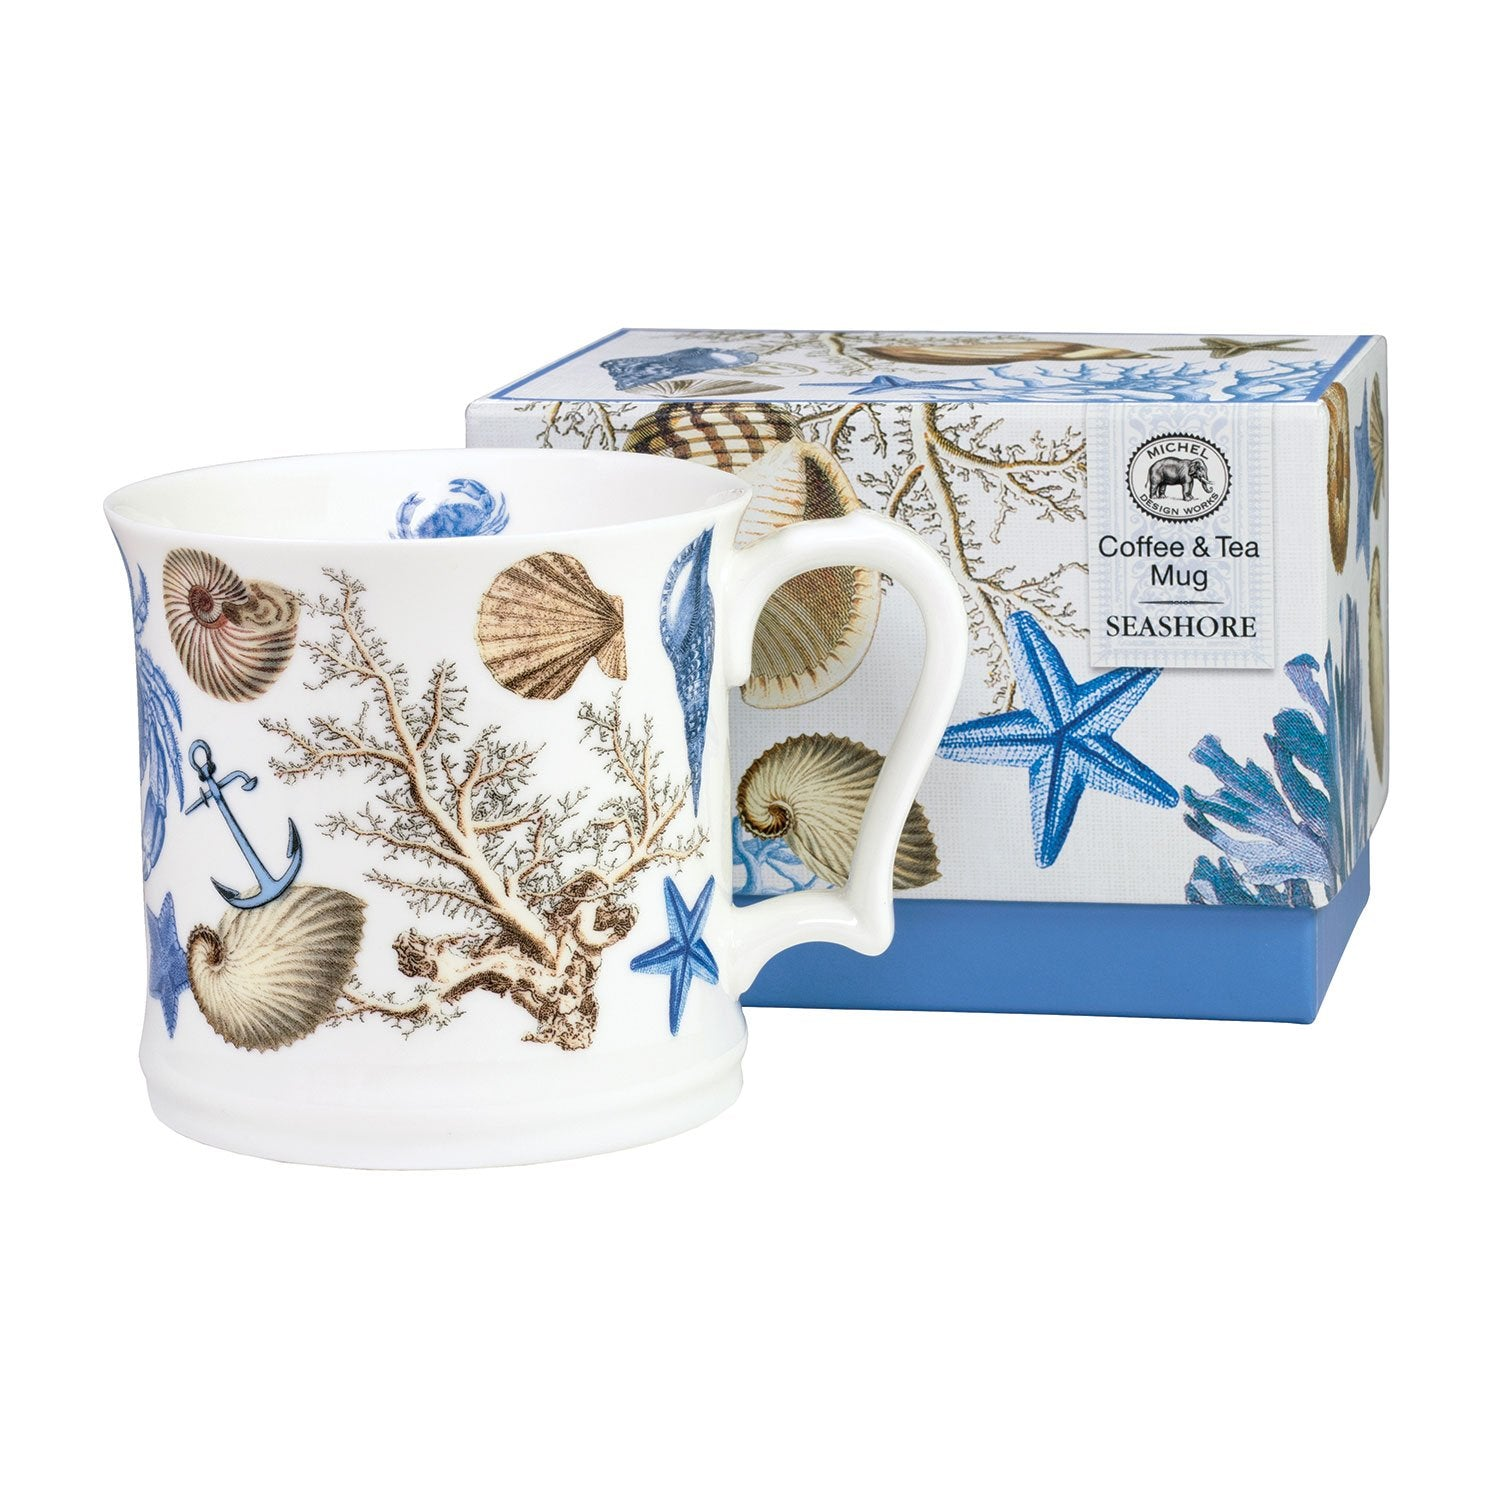 Seashore Coffee & Tea Mug